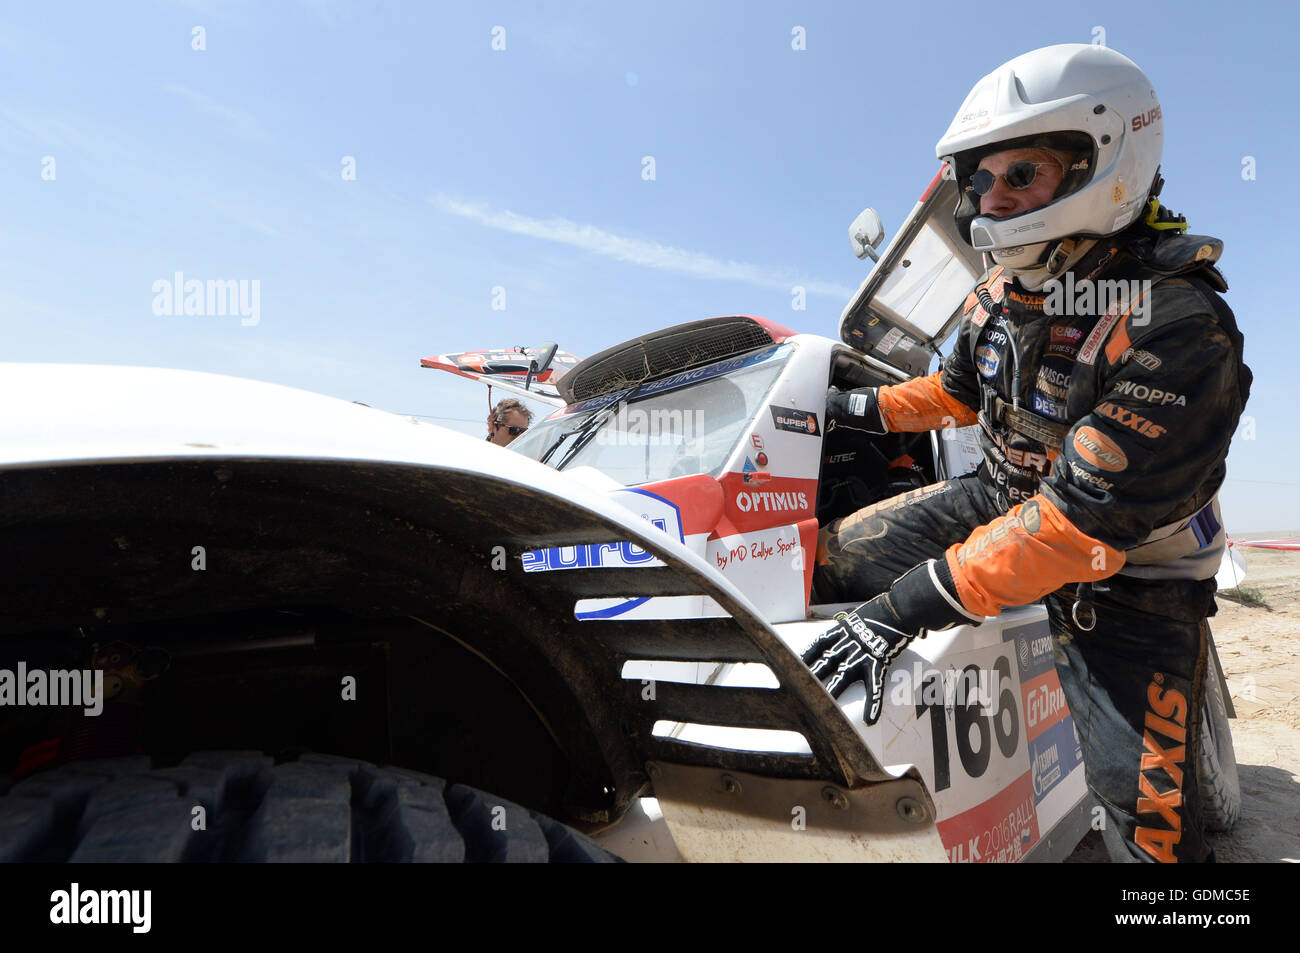 Dunhuang, China's Gansu Province. 19th July, 2016. MD RALLYE SPORT's driver Cornelis Koolen takes off the - Stock Image